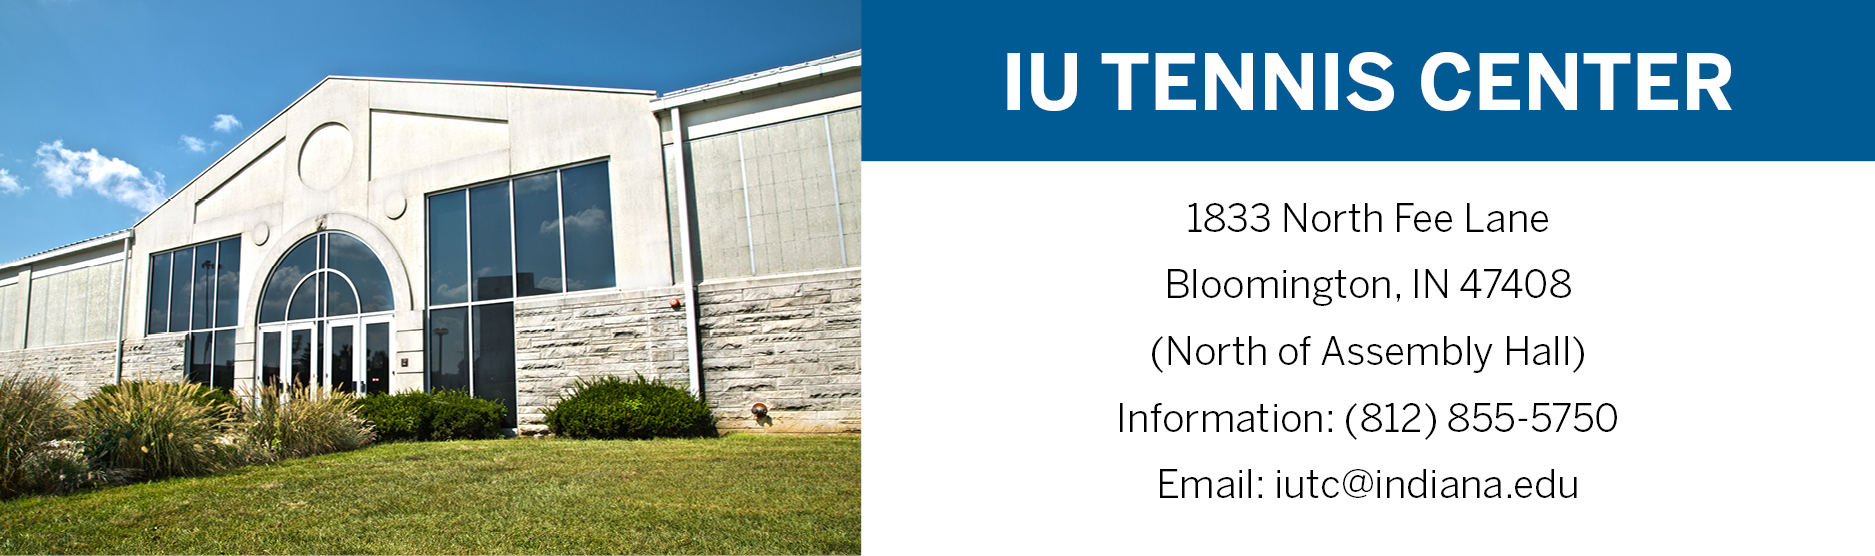 IU Tennis Center 1833 N Fee Ln Bloomington, IN 47408 (North of Assembly Hall) (812)855-5750 iutc@indiana.edu